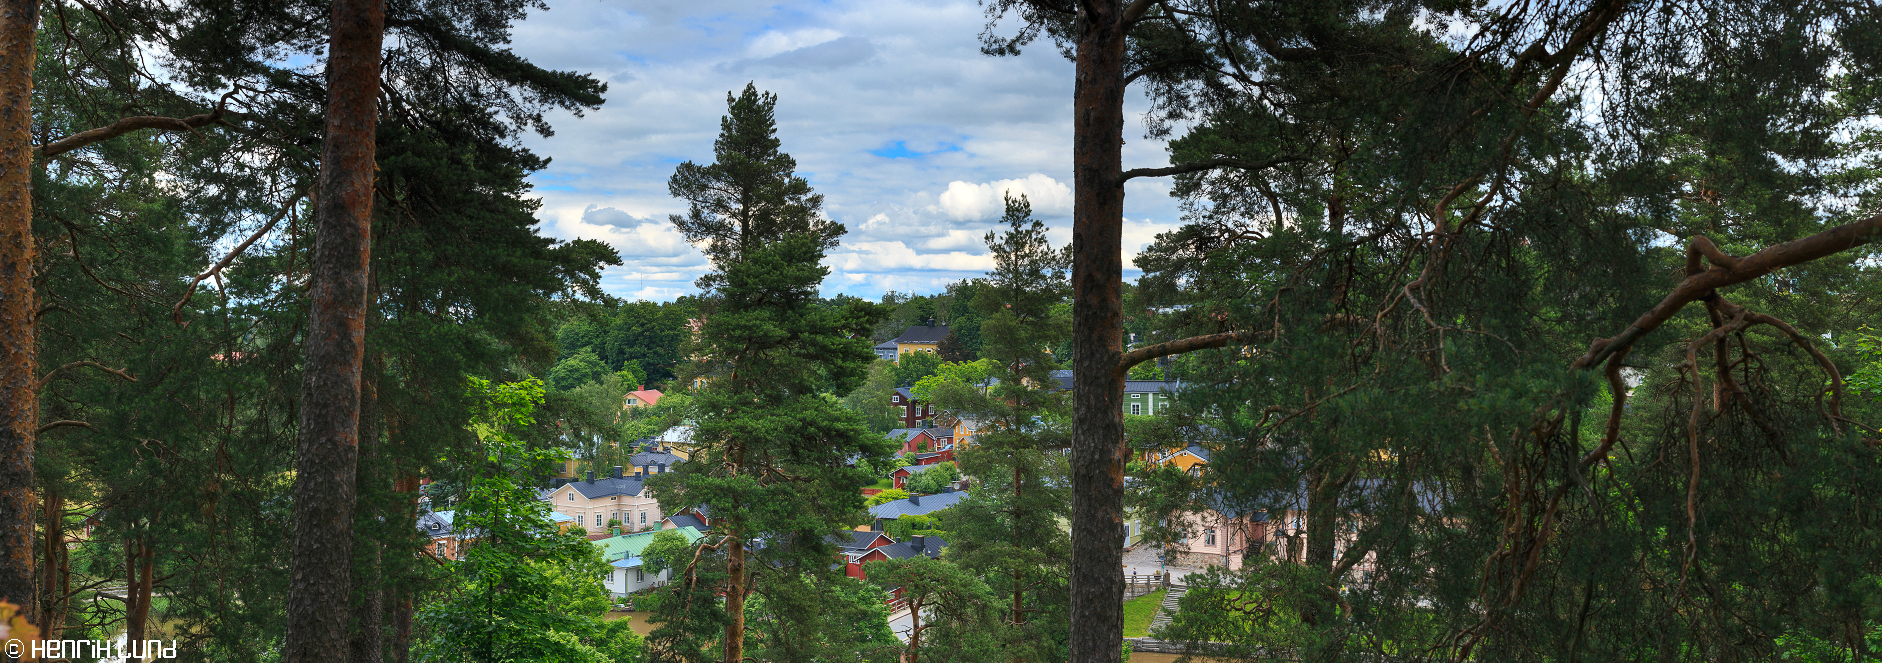 Panoramic view over part of old town of Porvoo. Cultural landscape of Finland. June 2014.